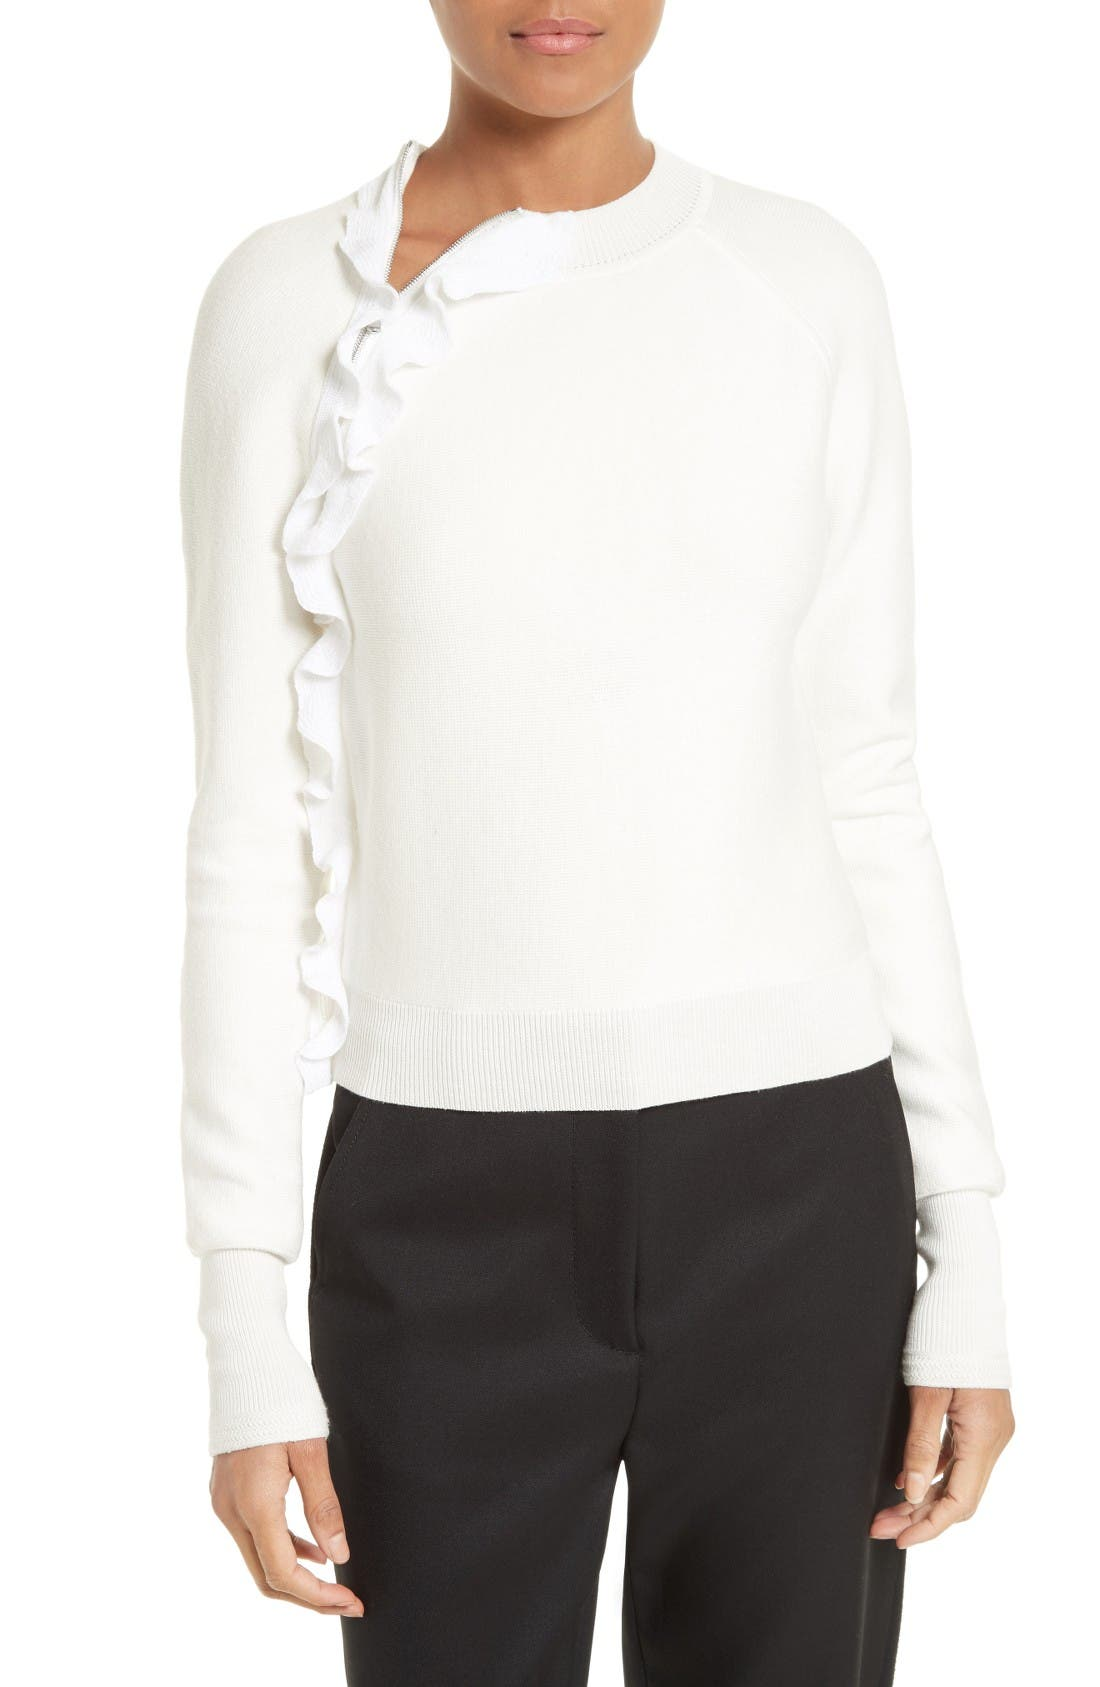 3.1 PHILLIP LIM Ruffle Front Zip Pullover